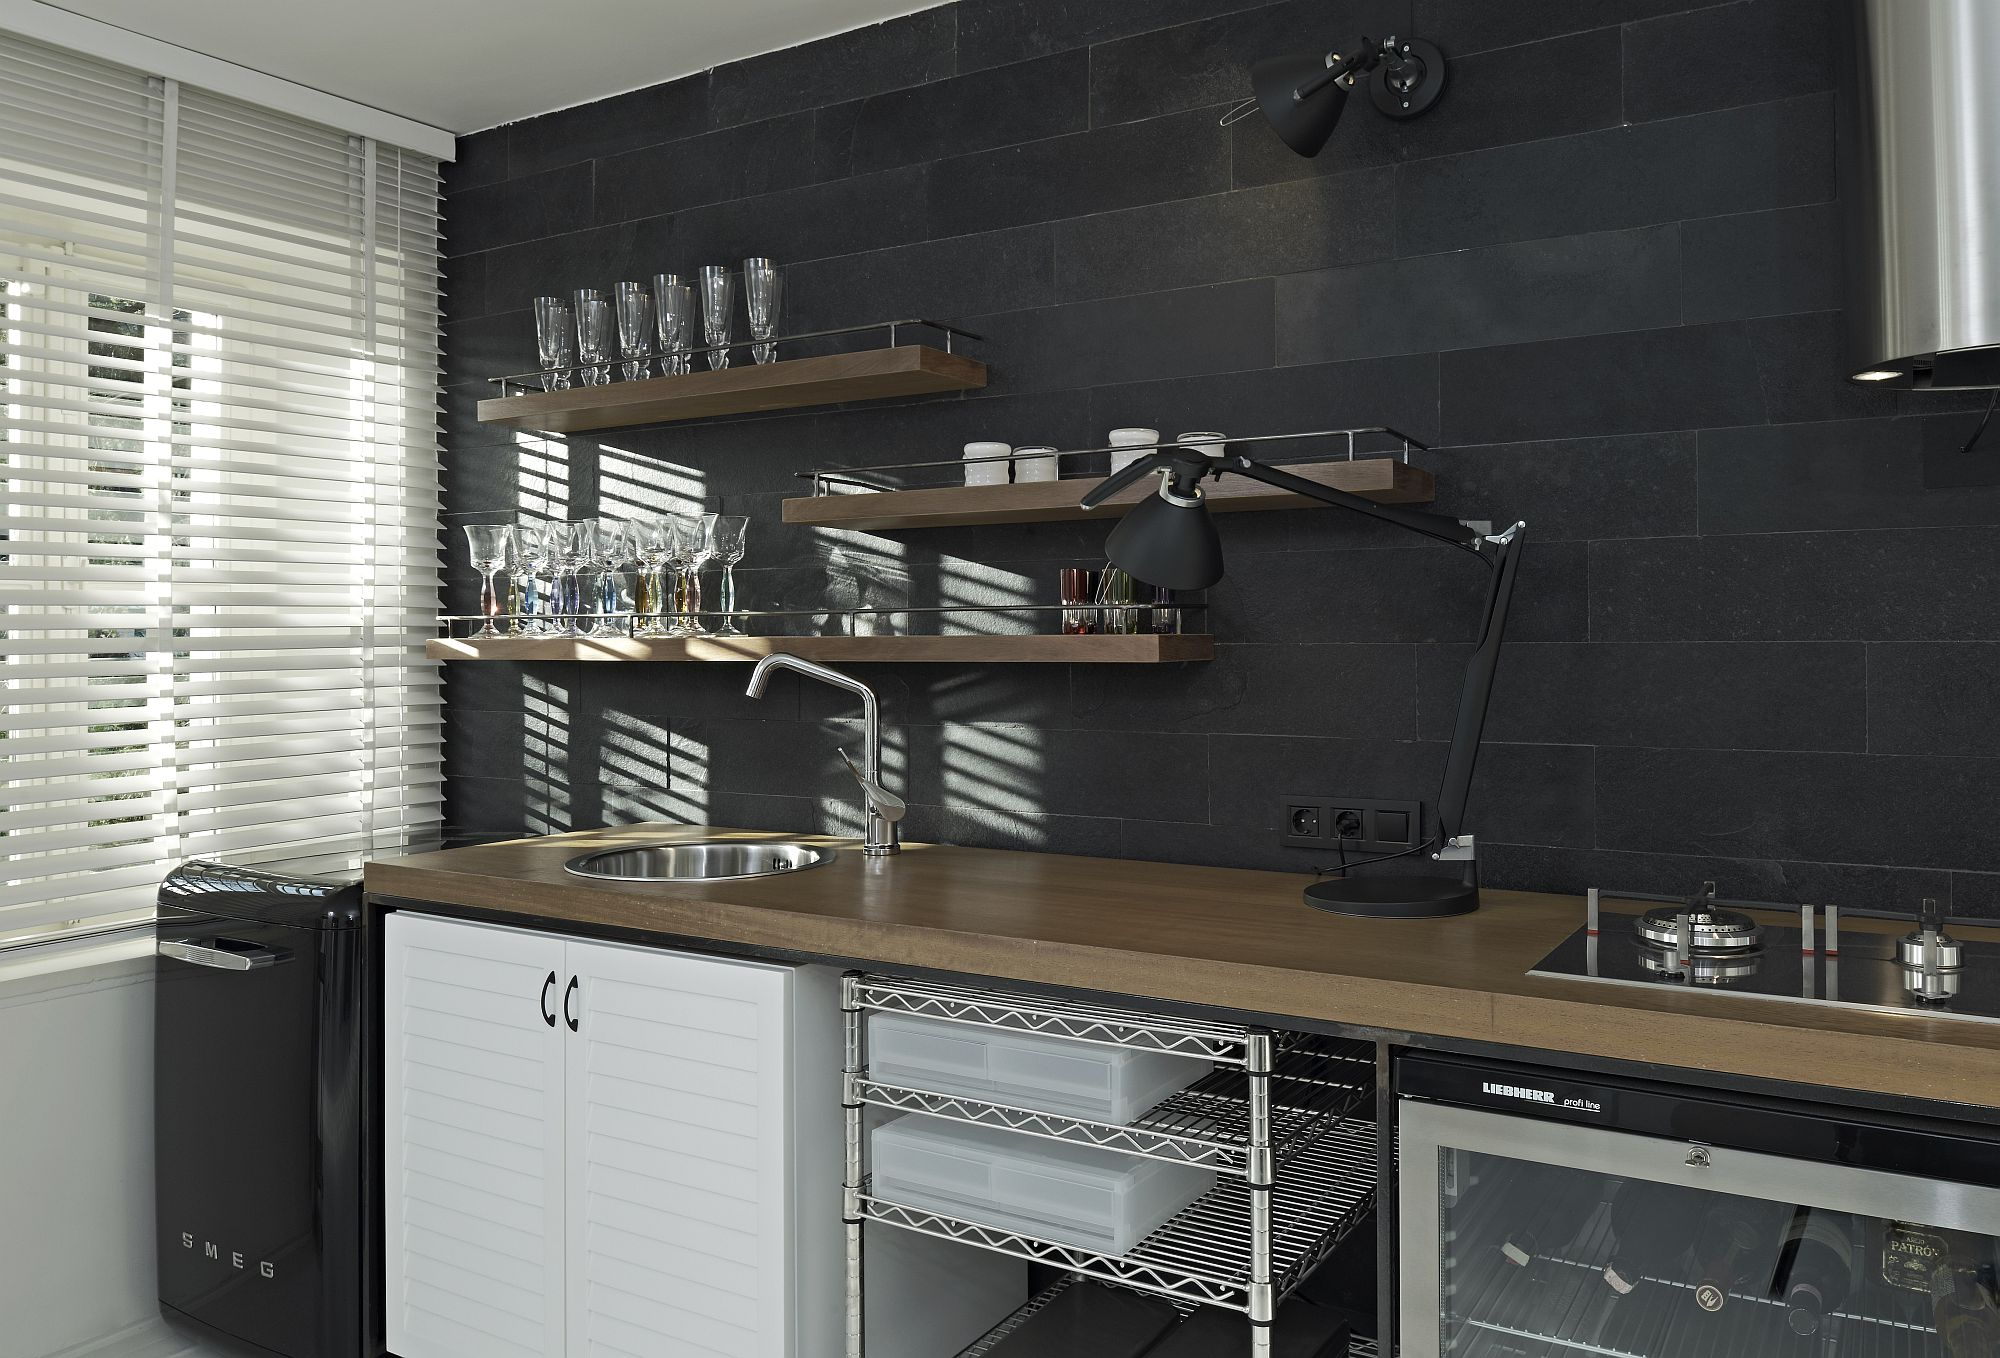 Dark-accent-wall-offers-the-perfect-backdrop-for-the-kitchenette